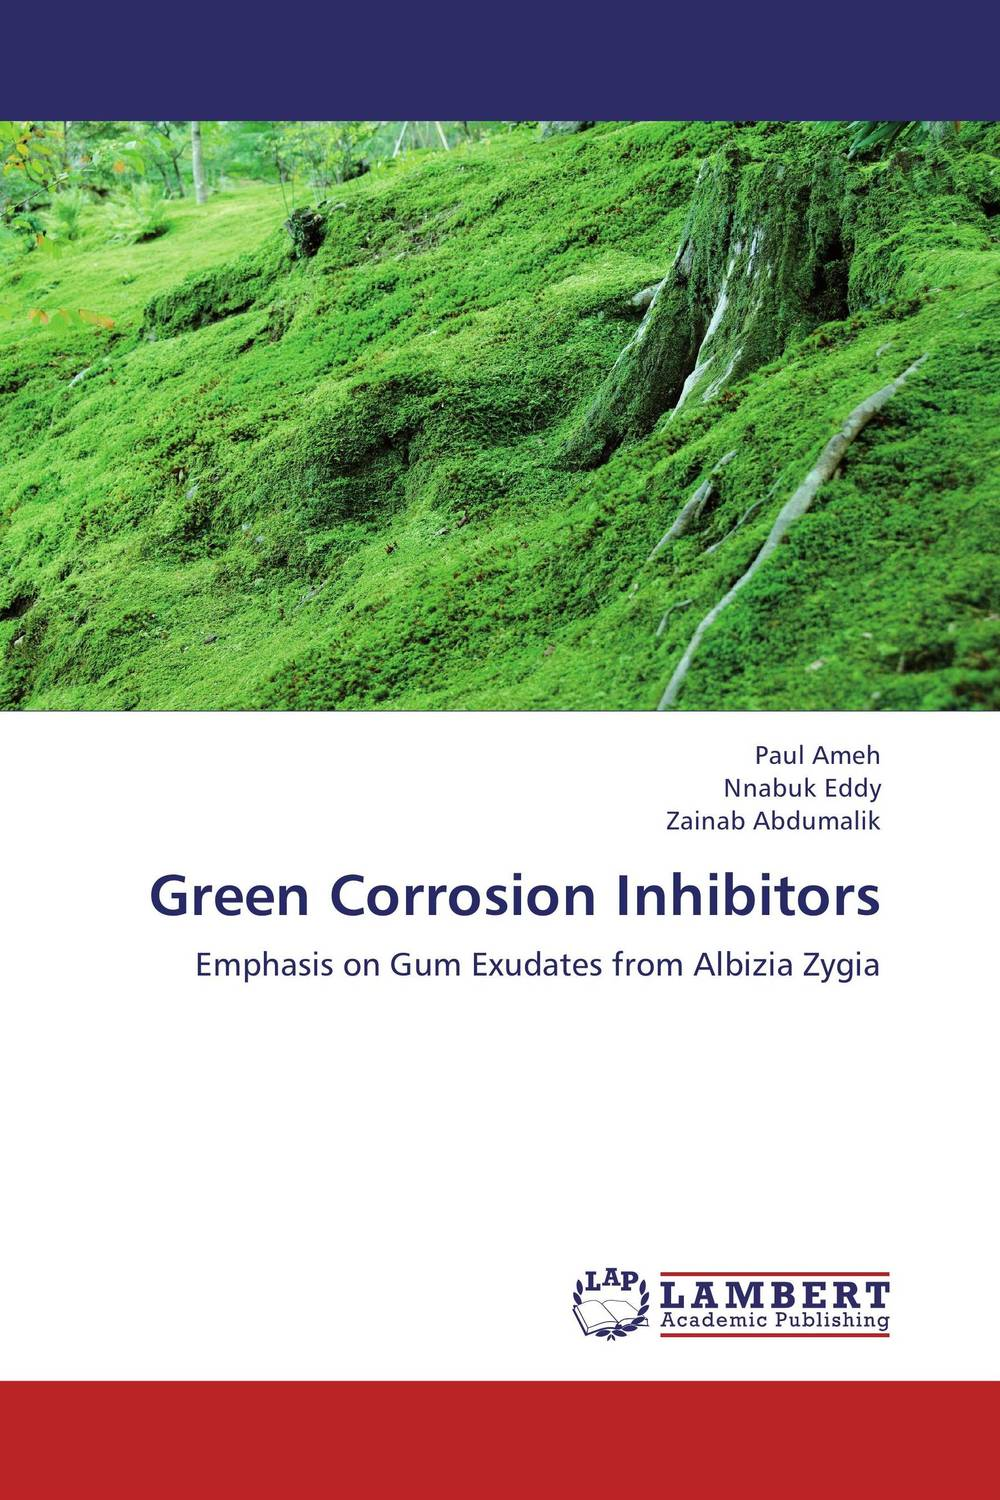 Green Corrosion Inhibitors moahmed ghoniem corrosion inhibitors for archaeological copper